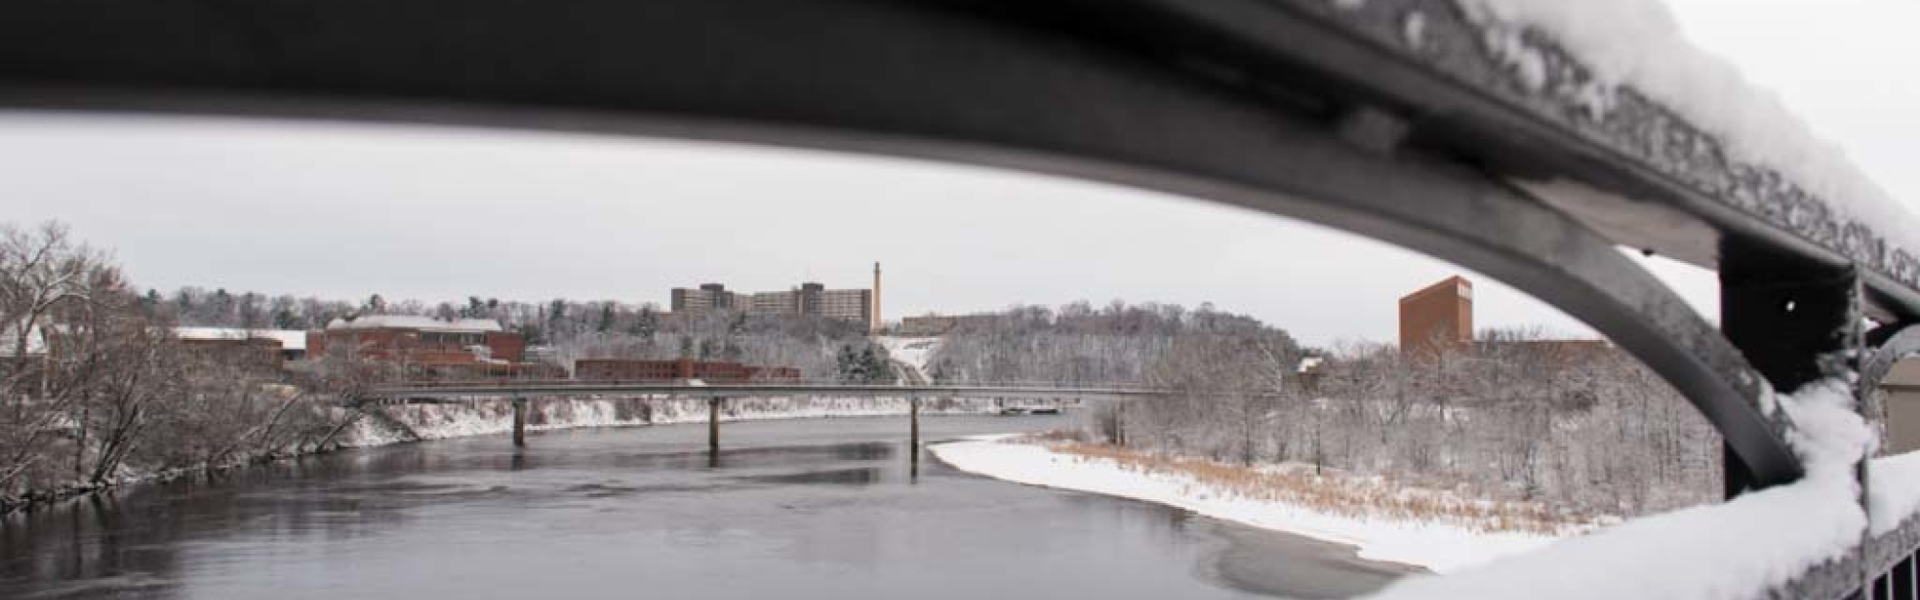 Campus winter scene from Water Street bridge